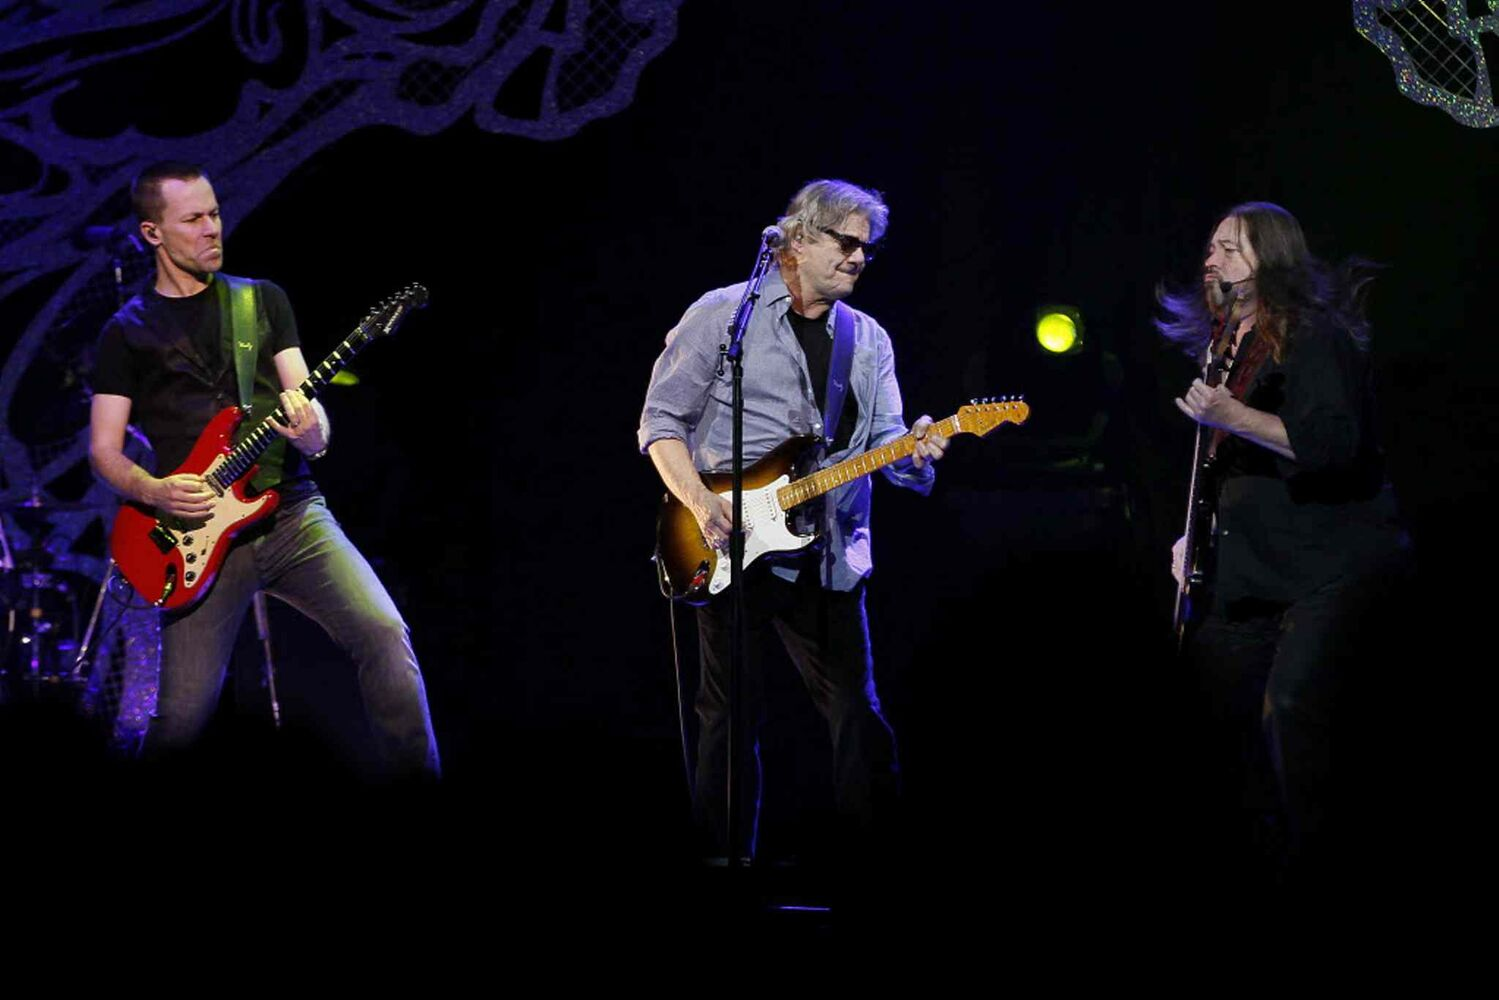 Steve Miller Band rocks the house at MTS Centre in Winnipeg Friday, April 4.  (John Woods / Winnipeg Free Press)